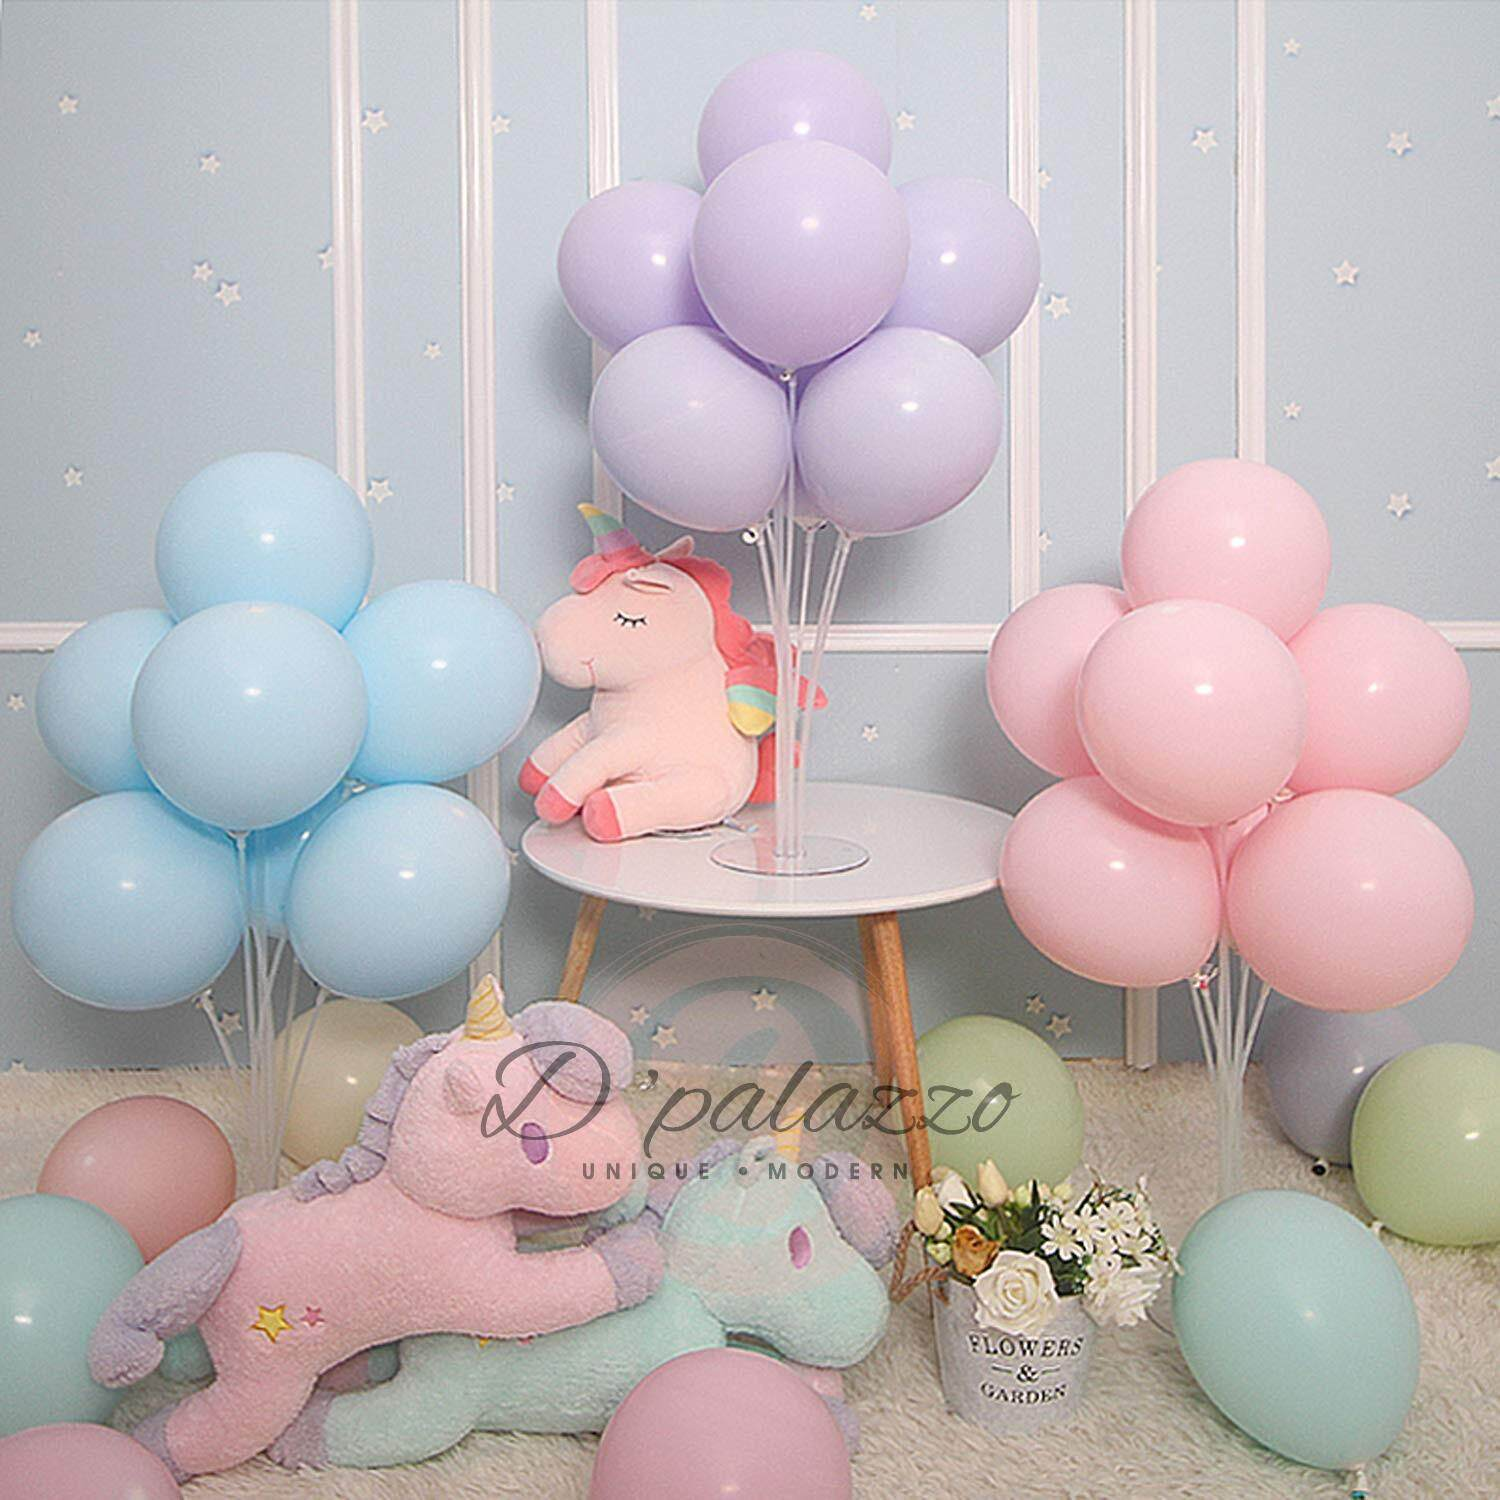 10 Inch 2.4g Macaron Color Balloon Latex Balloon Ice Cream Color Party Decor By D Palazzo.